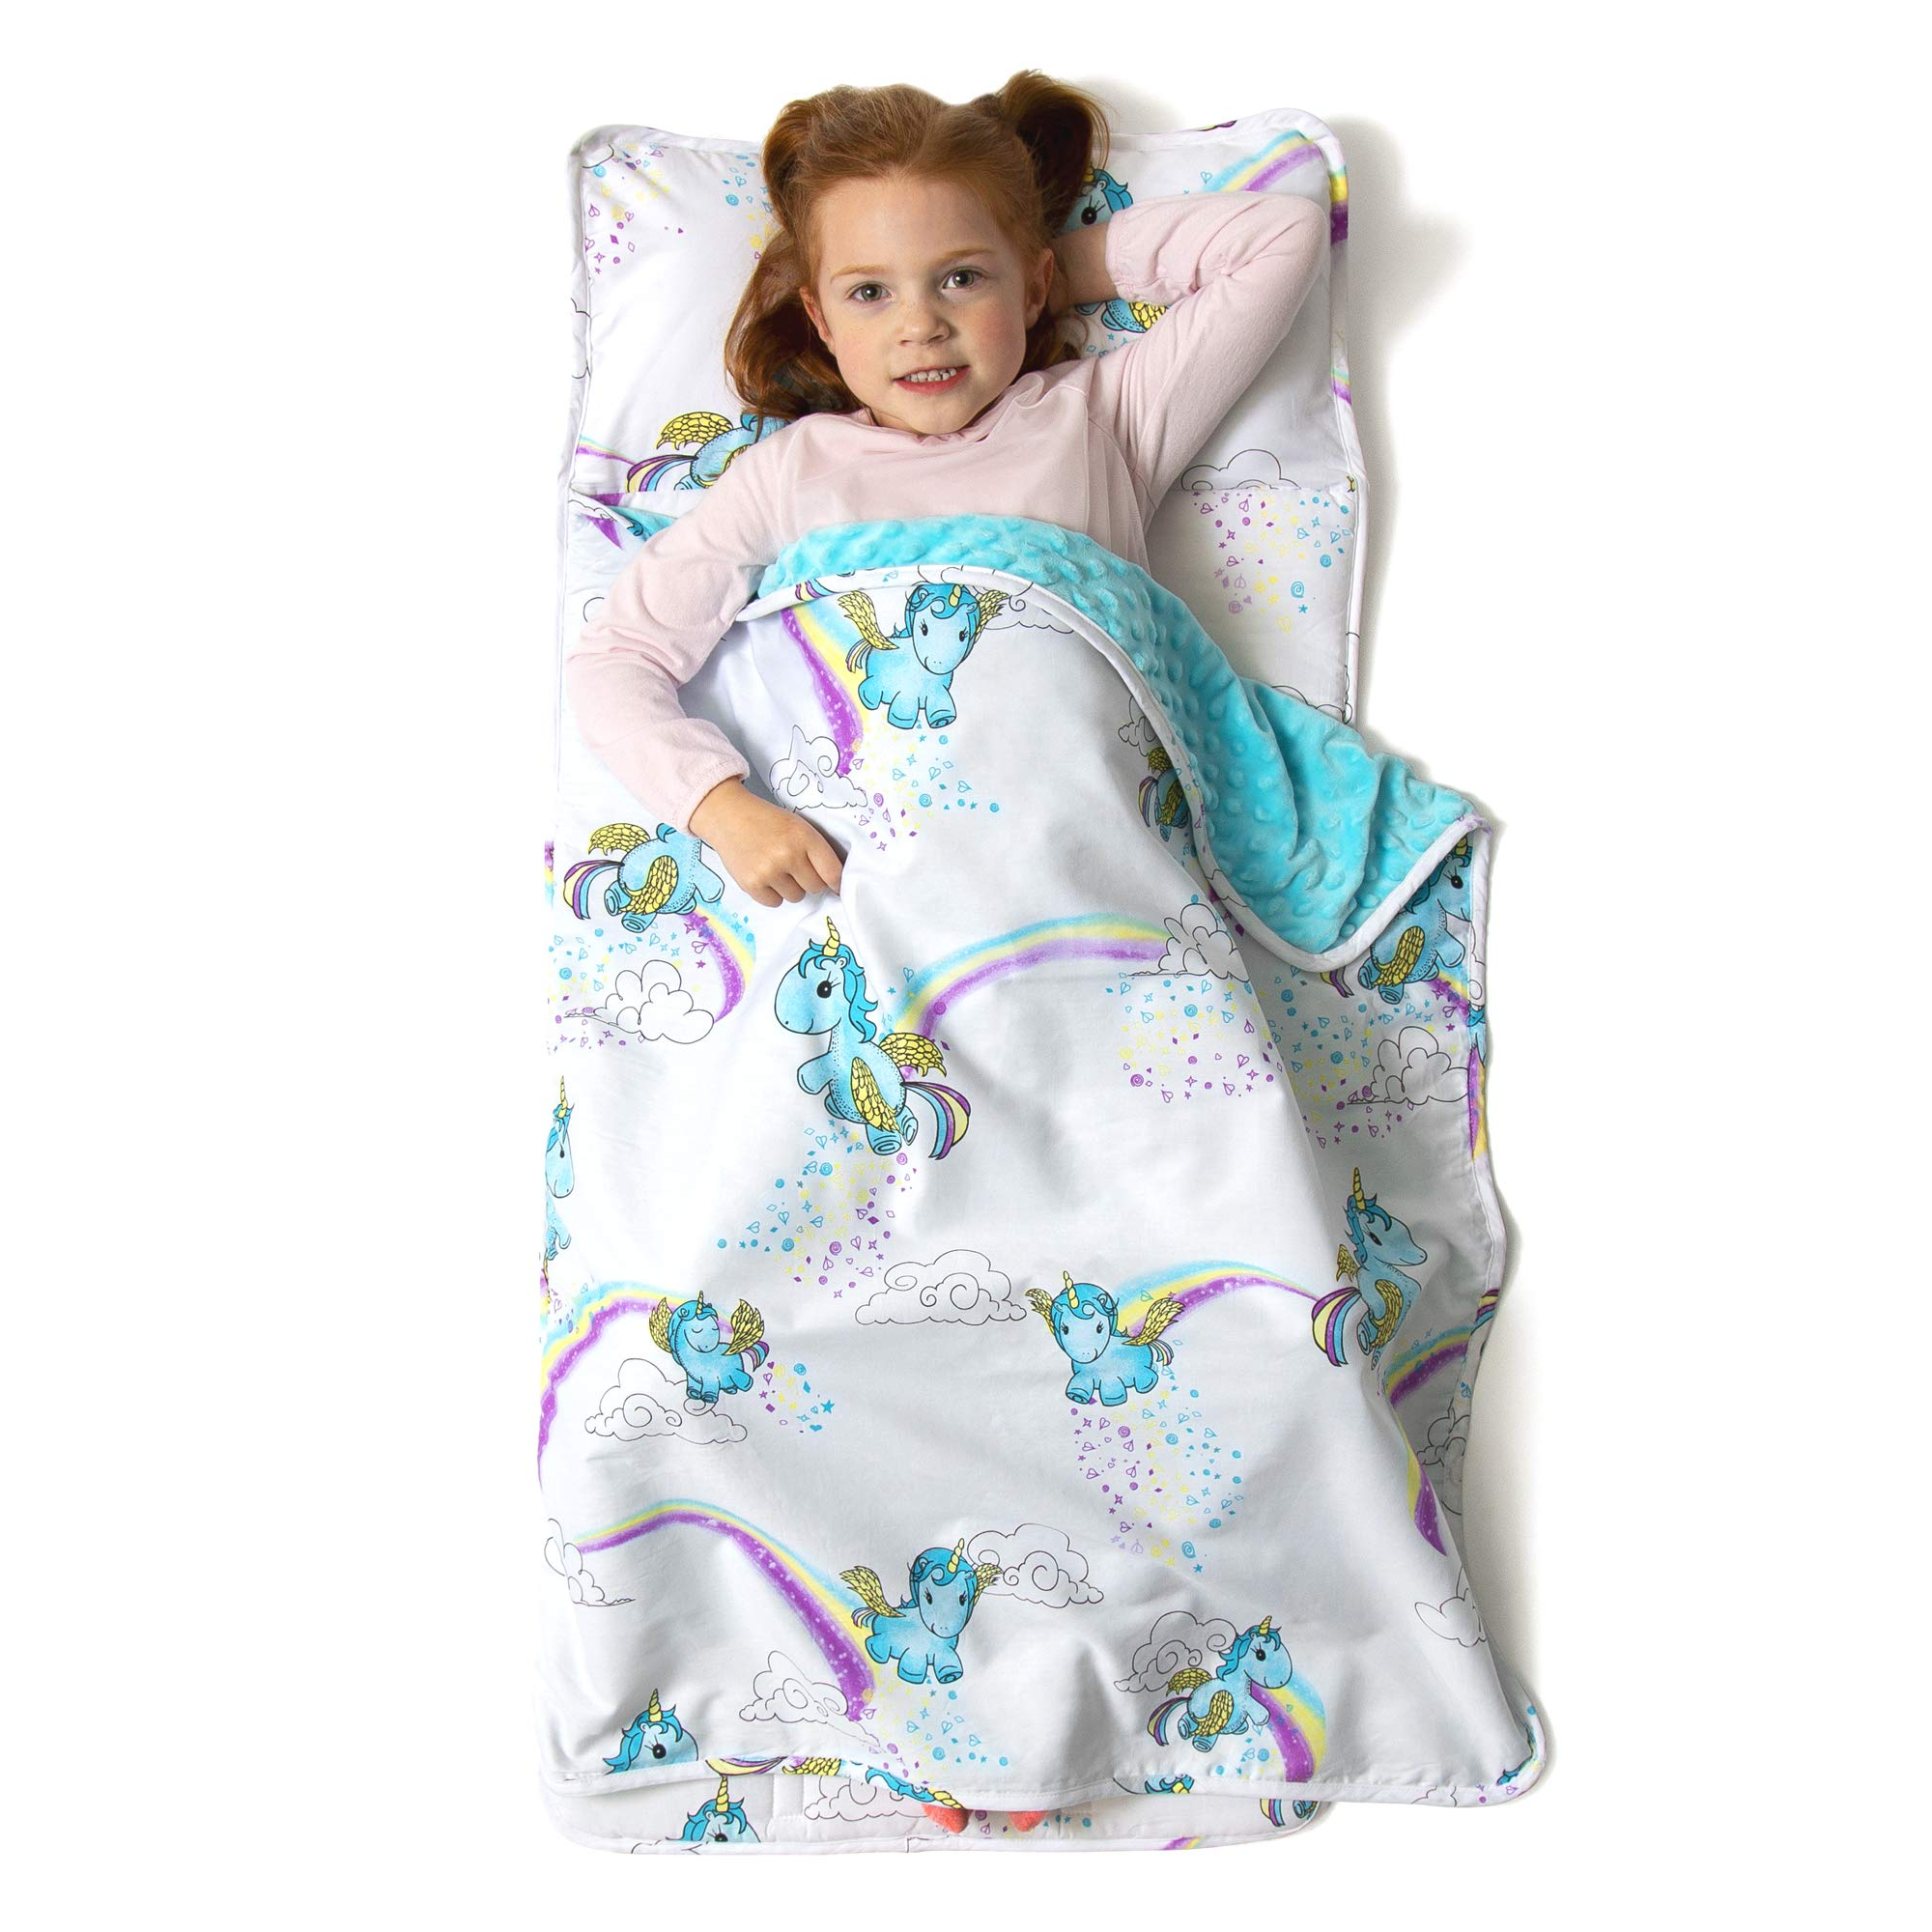 JumpOff Jo Toddler Nap Mat, Sleeping Bag for Preschool and Daycare, Unicorns, 43 x 21 Inches